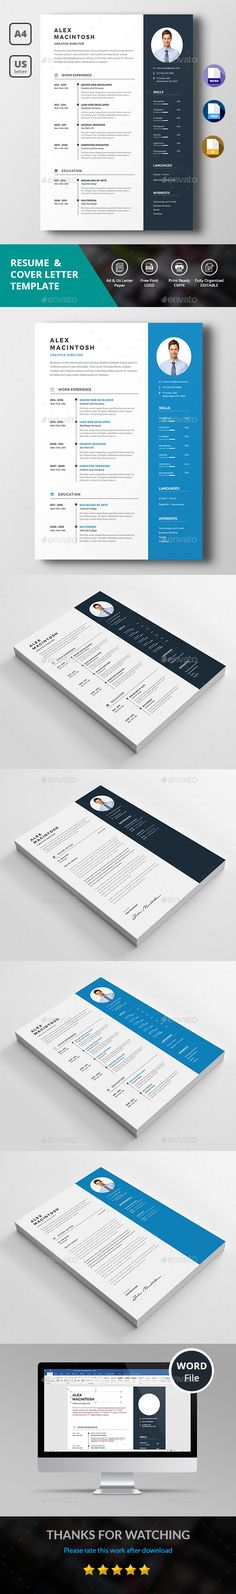 Clean Resume Template PSD, EPS, AI, DOCX & DOC - A4 and US Letter